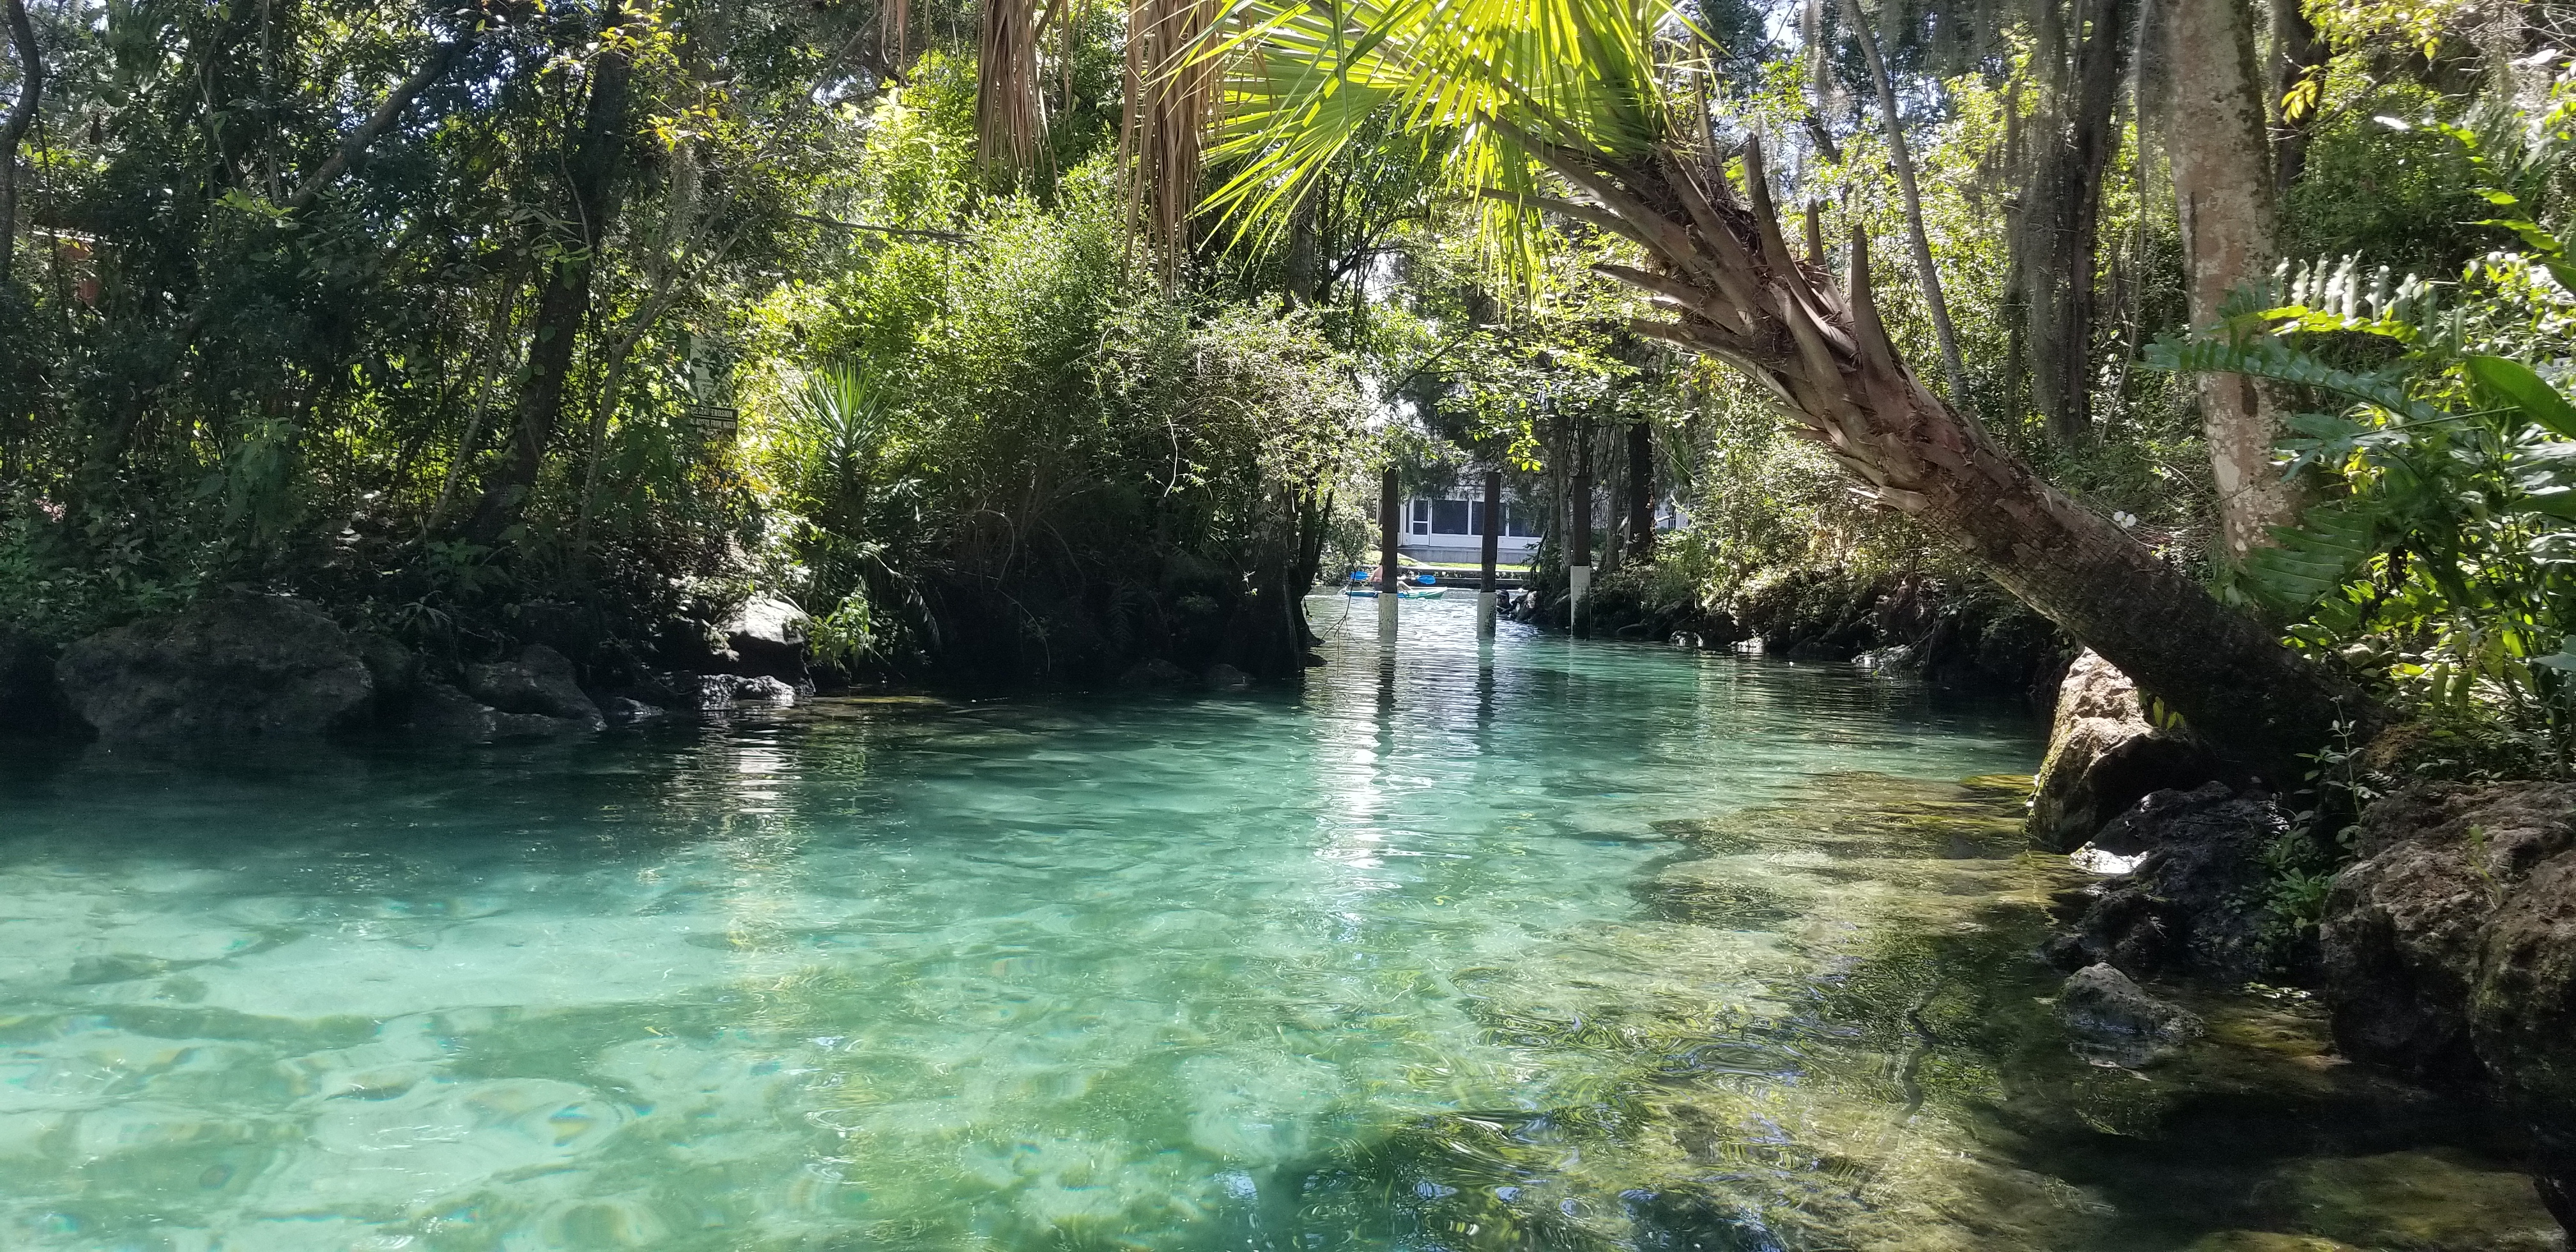 Guided Kayaking Tours in FL, Florida